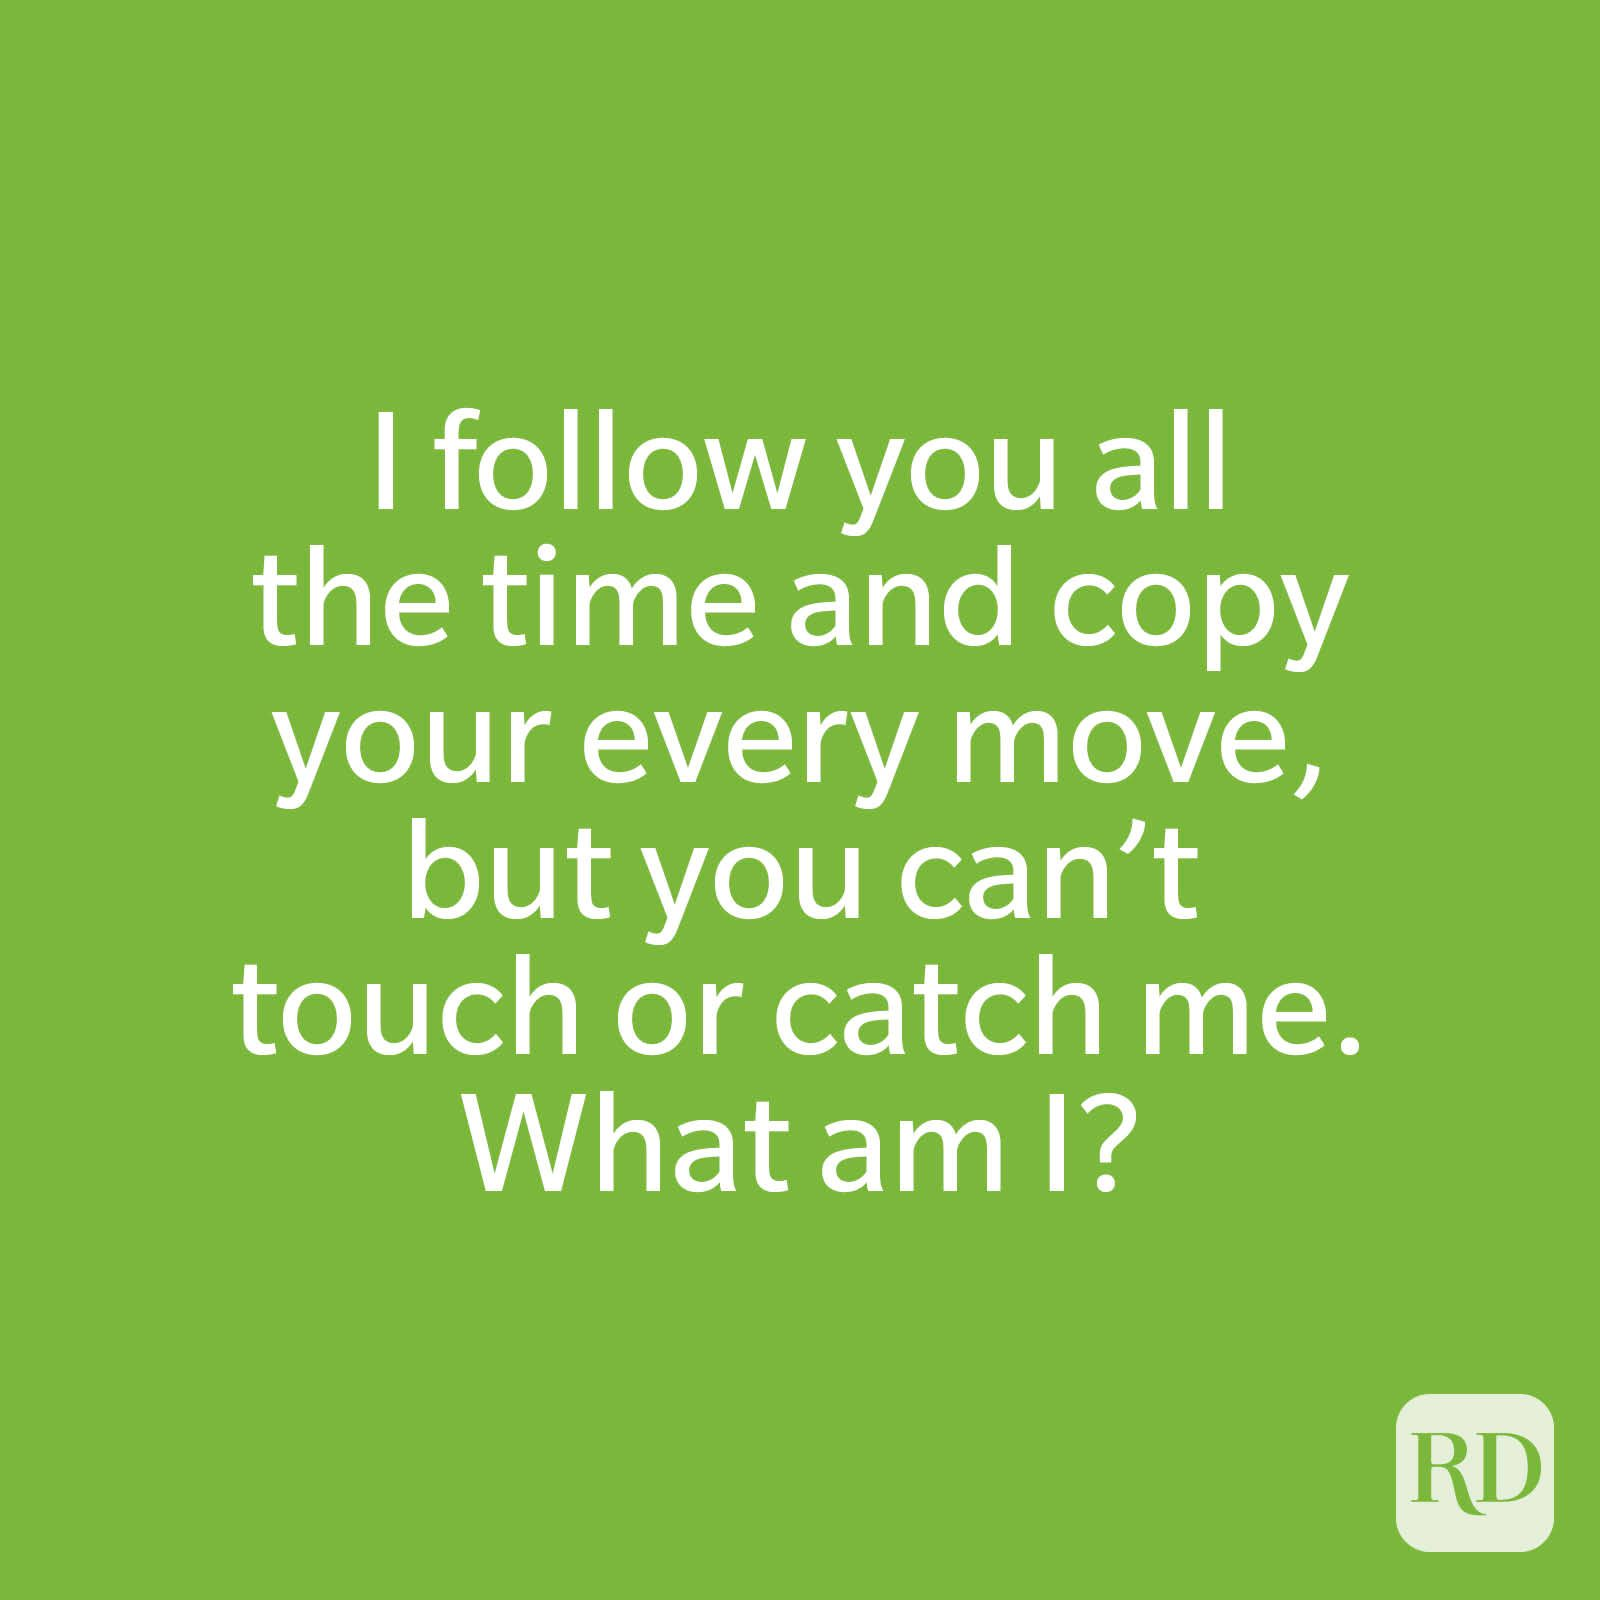 I follow you all the time and copy your every move, but you can't touch or catch me. What am I?